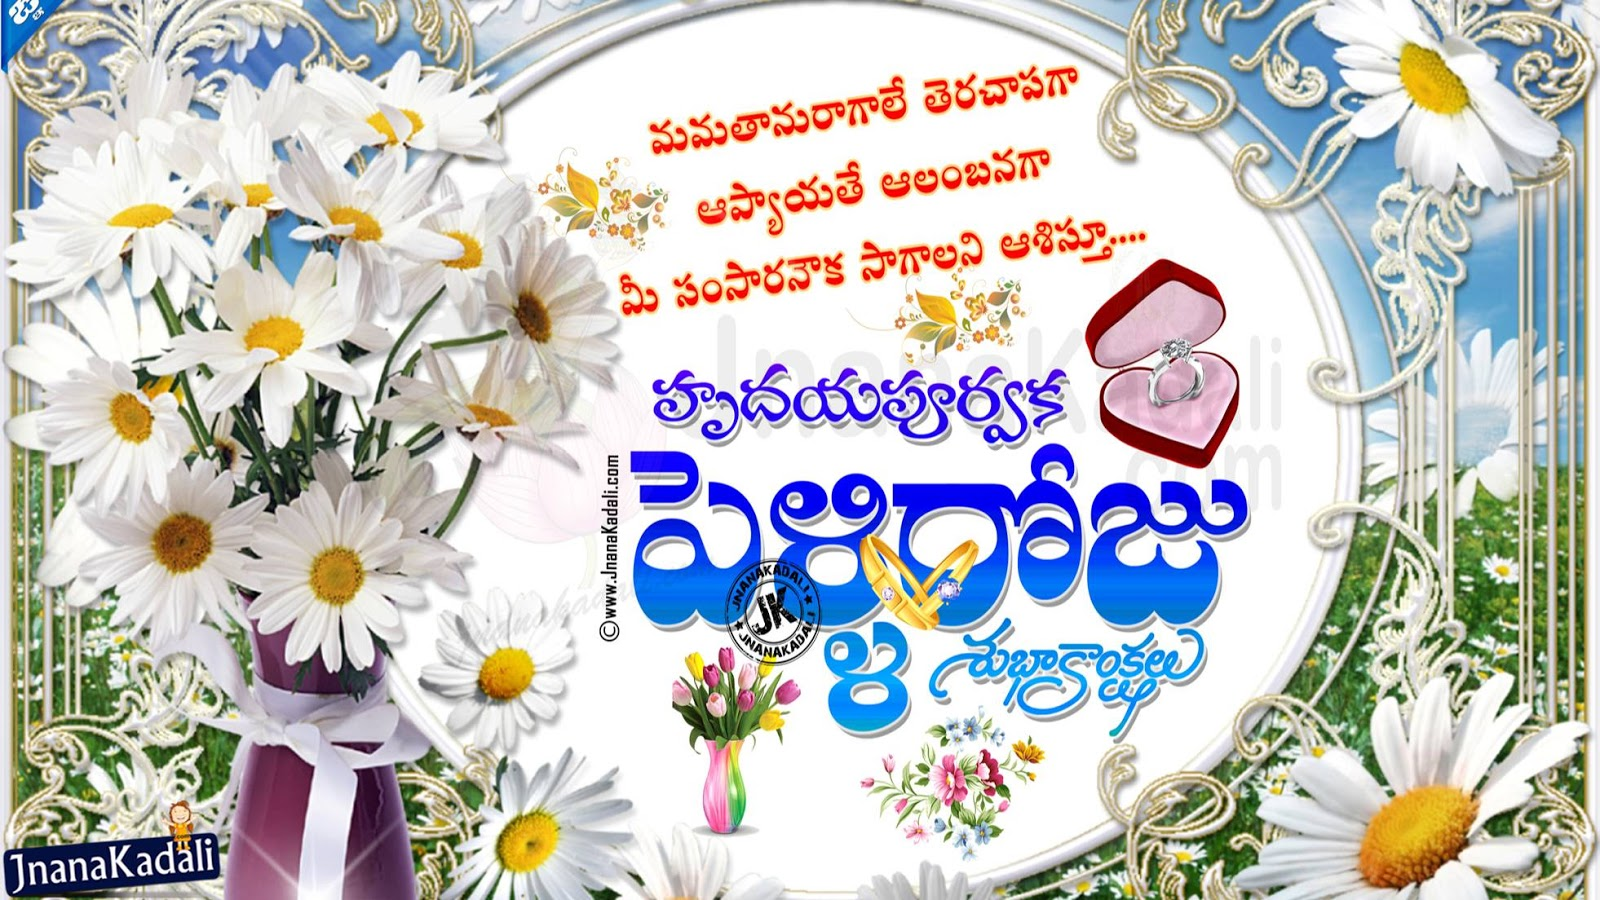 wedding anniversary telugu quotations and greetings wishes images